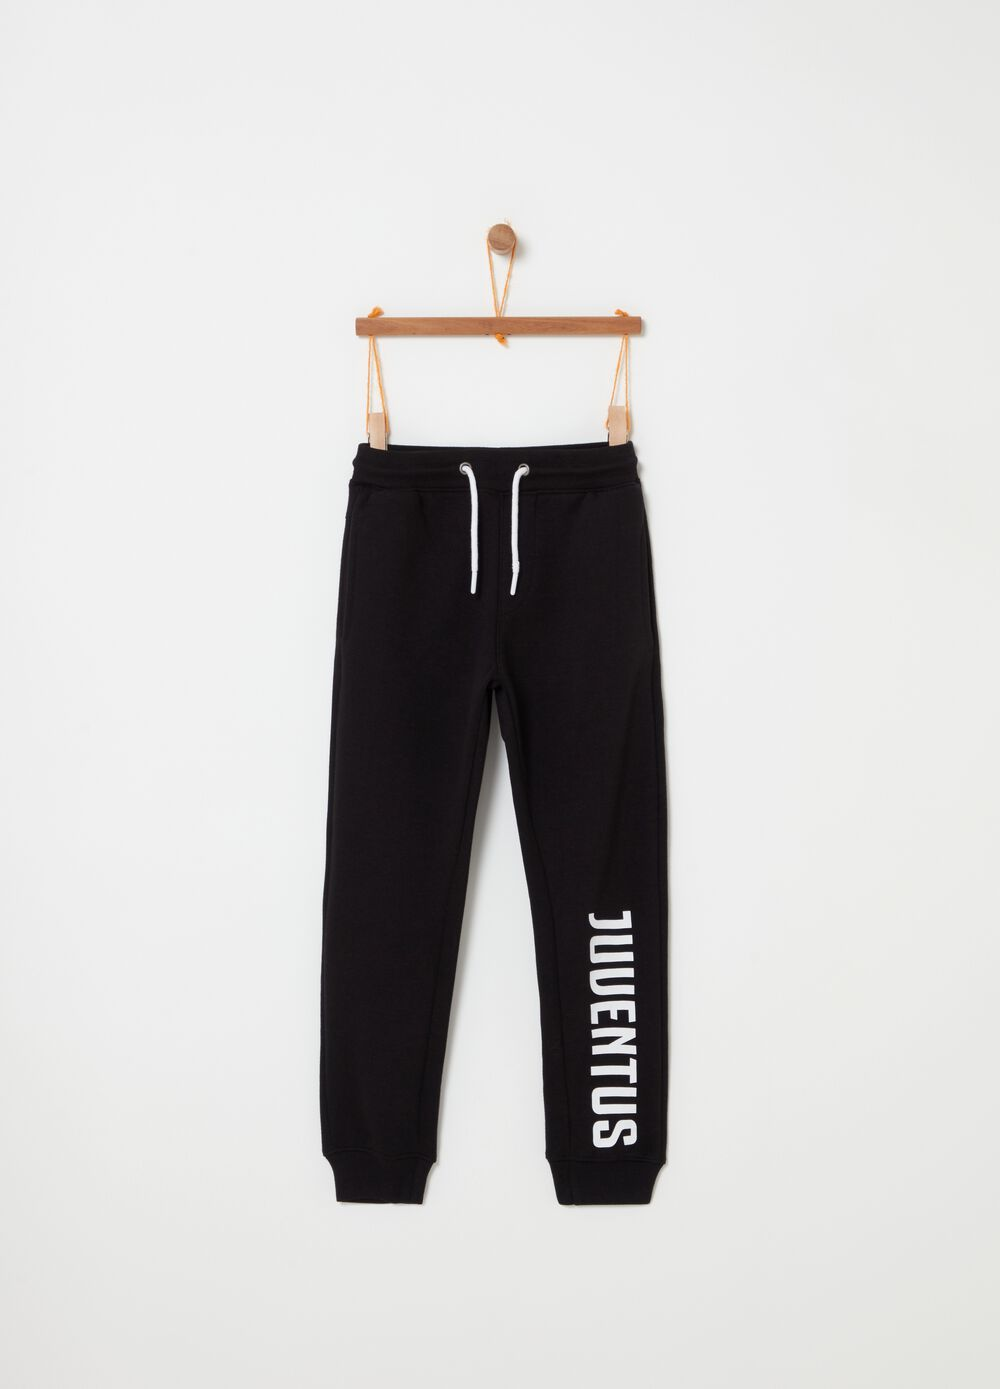 French terry Juventus trousers